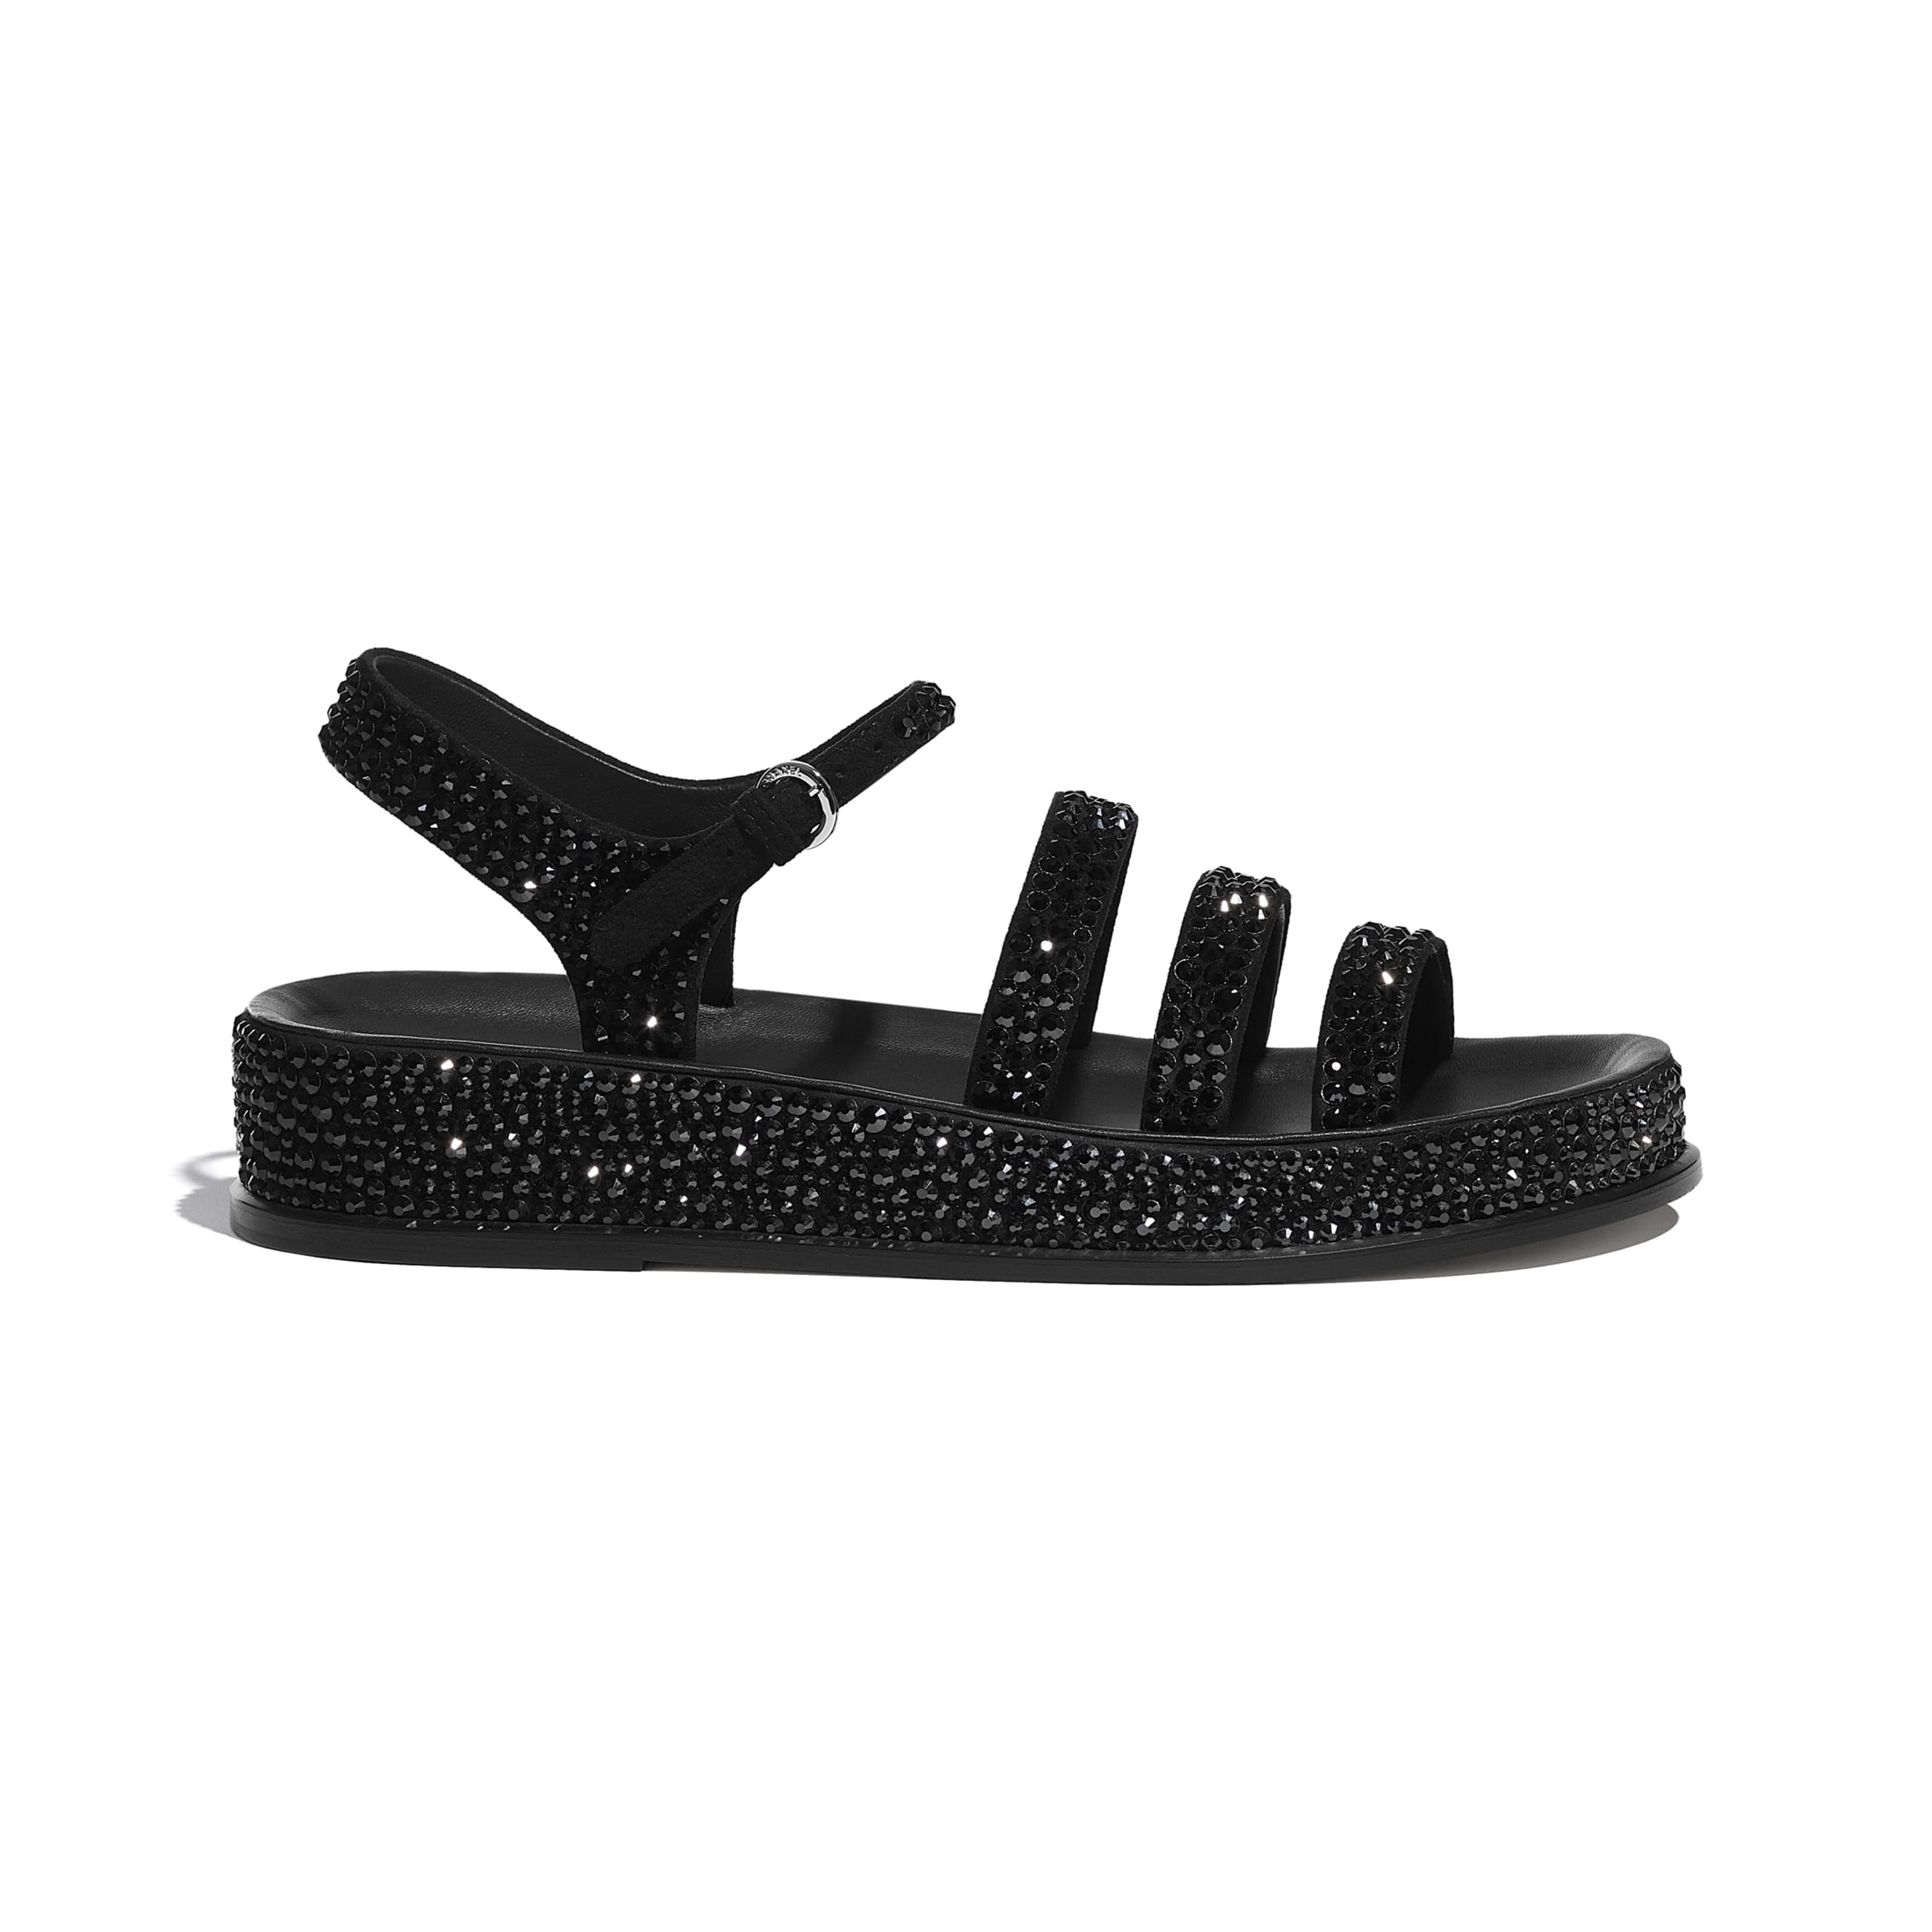 Sandals - Black - Suede Goatskin & Strass - CHANEL - Default view - see standard sized version